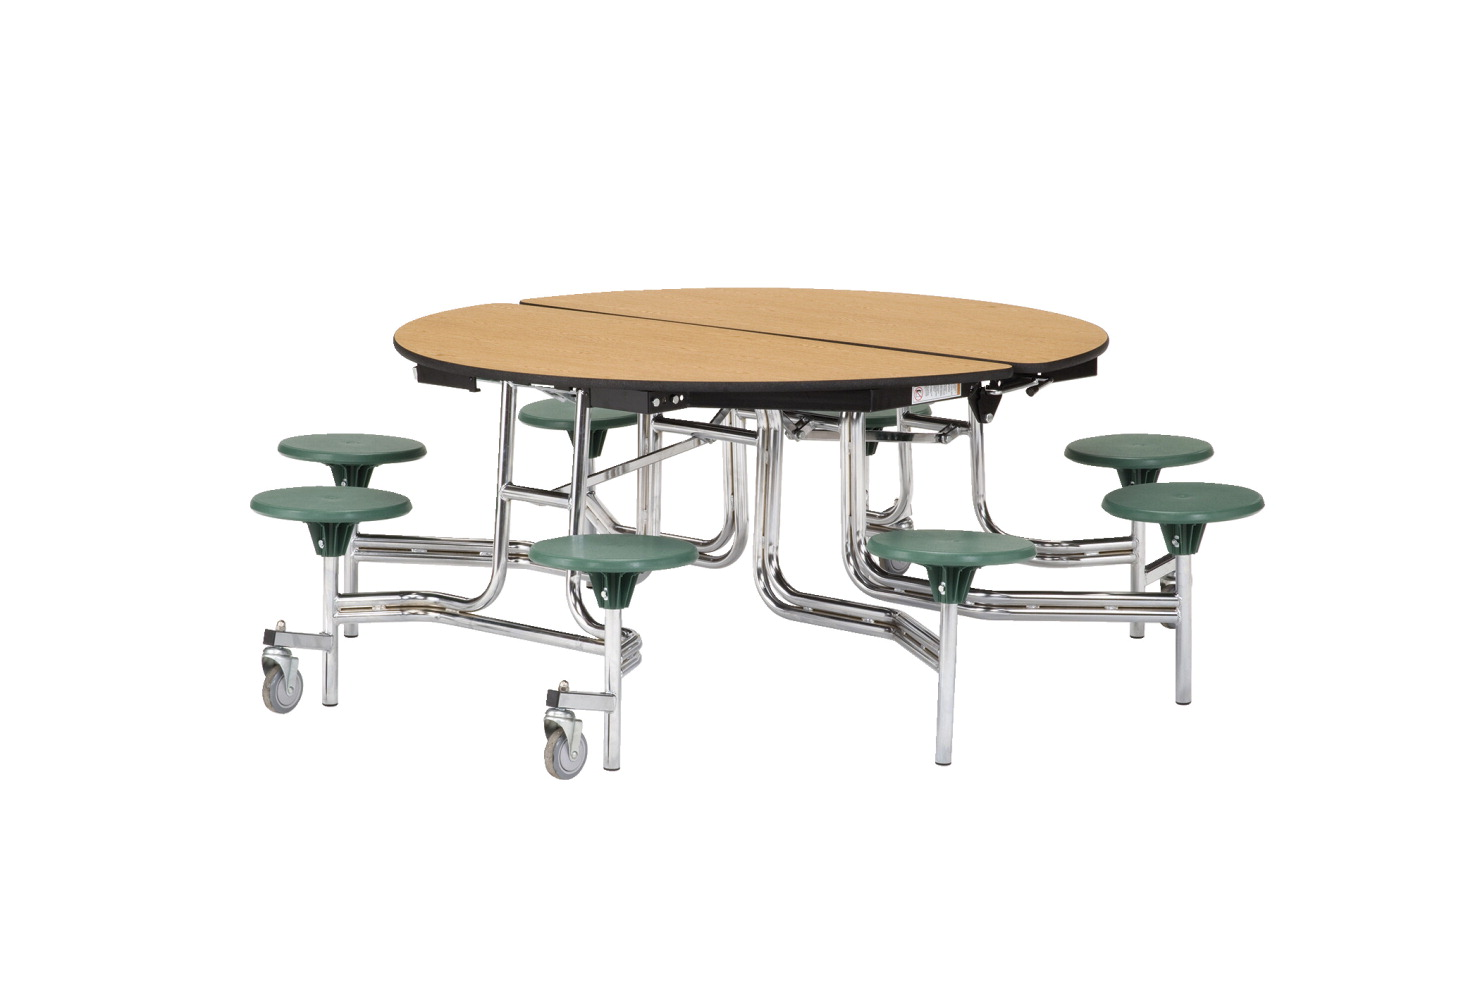 Classroom Select Round Mobile Cafeteria Table with 8 Seats and LockEdge, 60 in Dia x 29 in H, MDF Core High Pressure Laminate Top, Black Powder Coated Frame